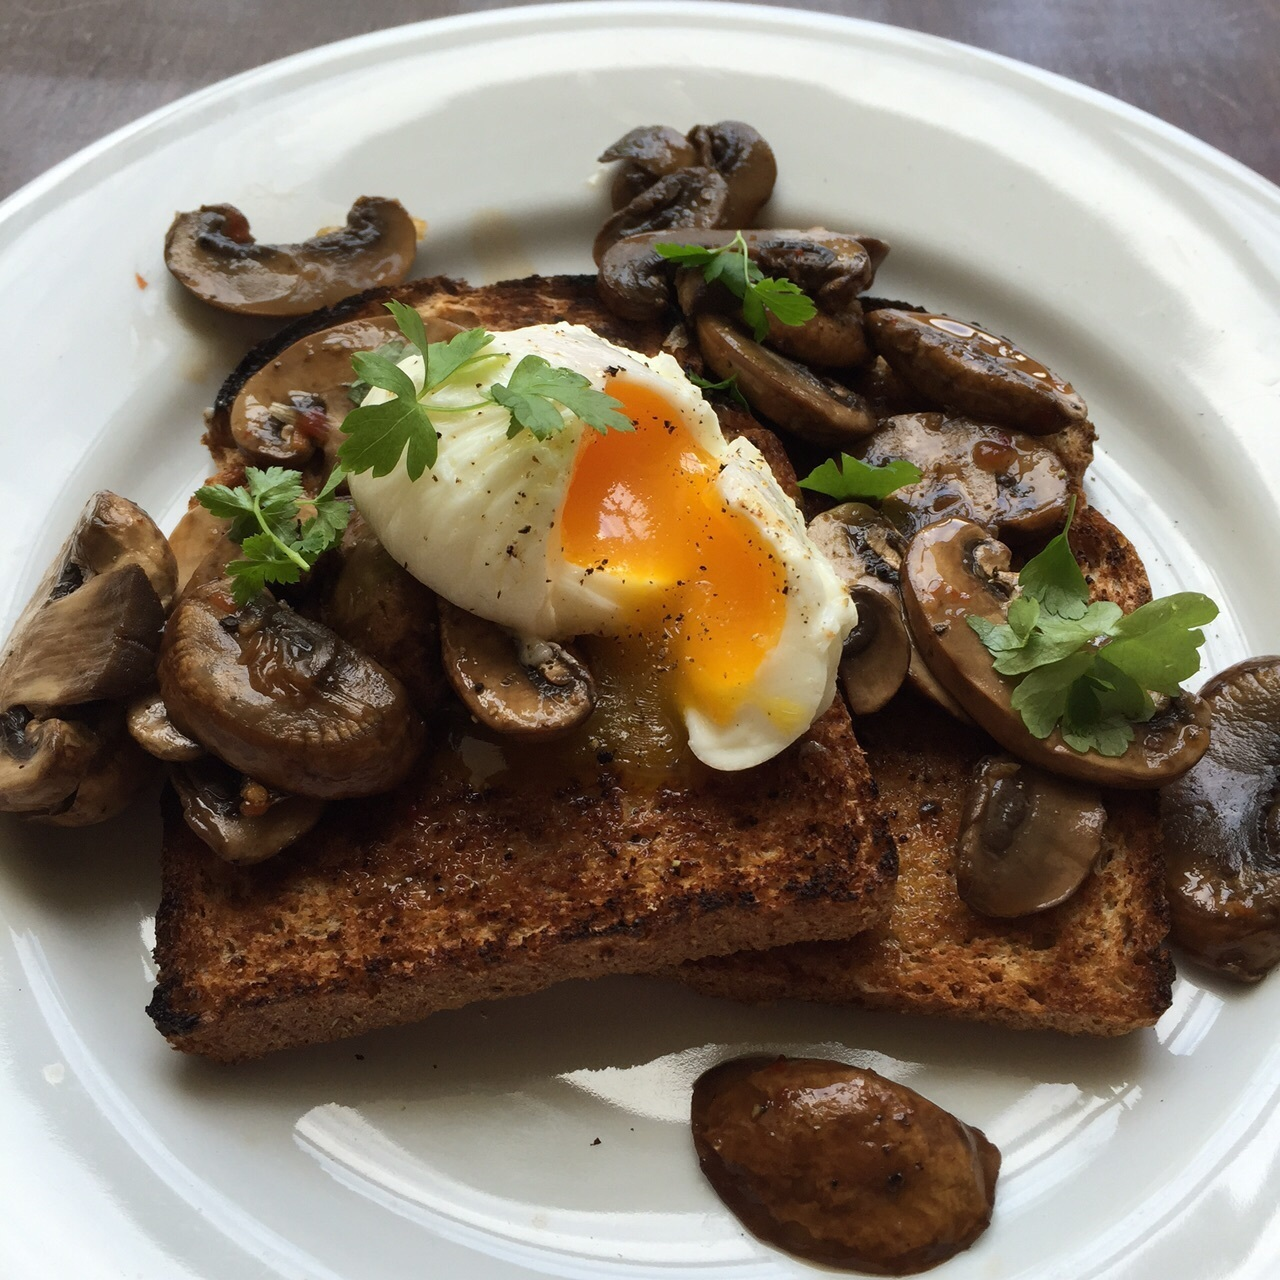 Sweet chilli mushrooms on toast with poached egg and parsley